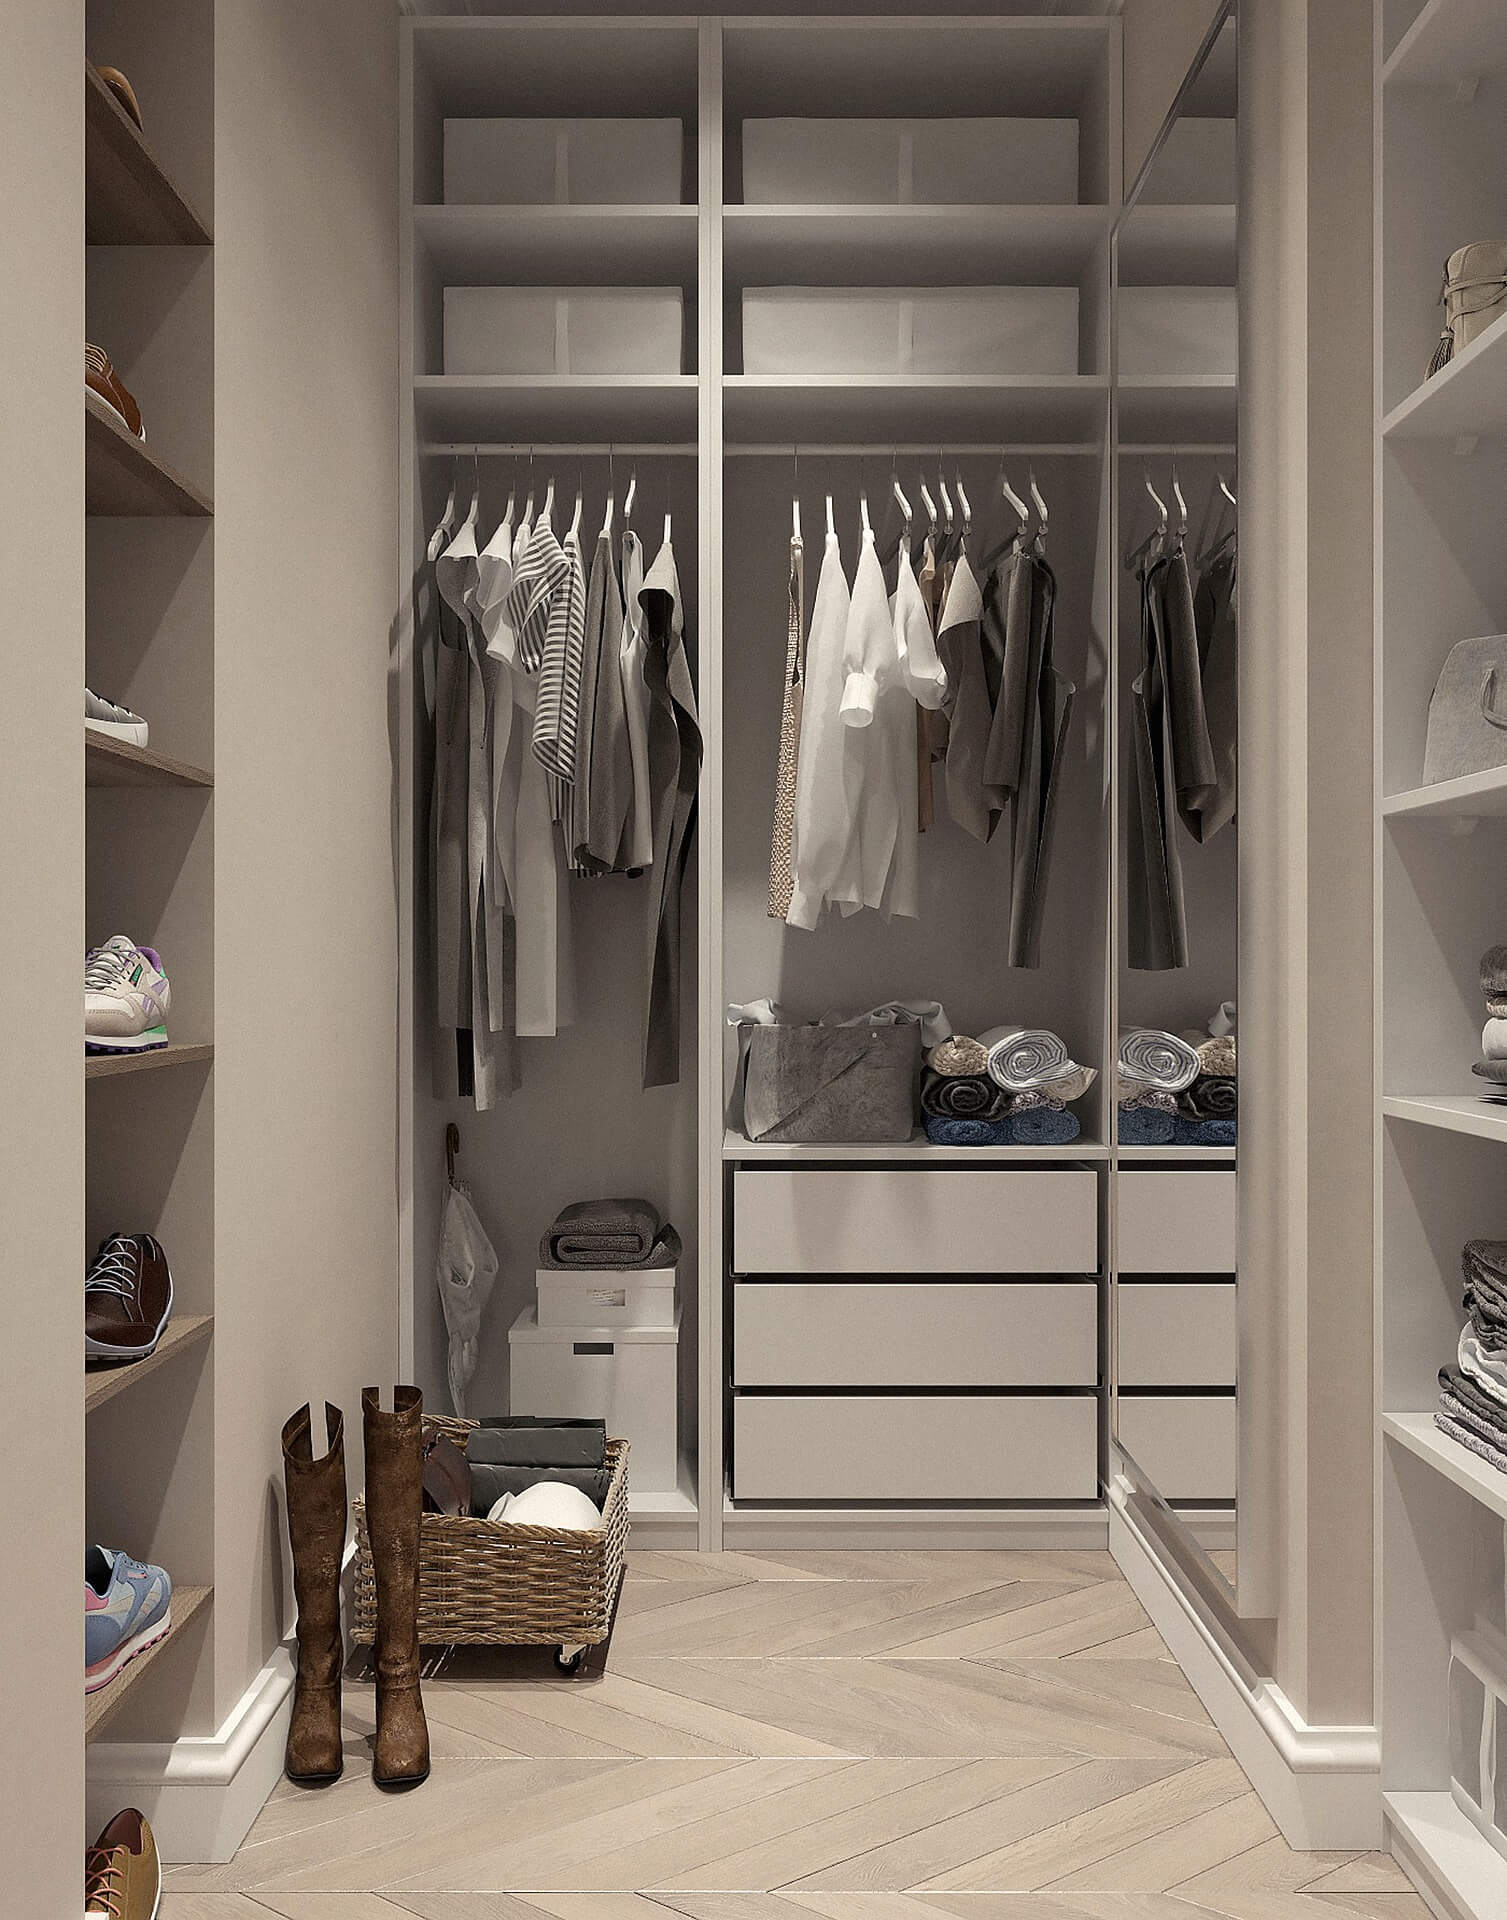 Steps to Declutter Your Closet Efficiently